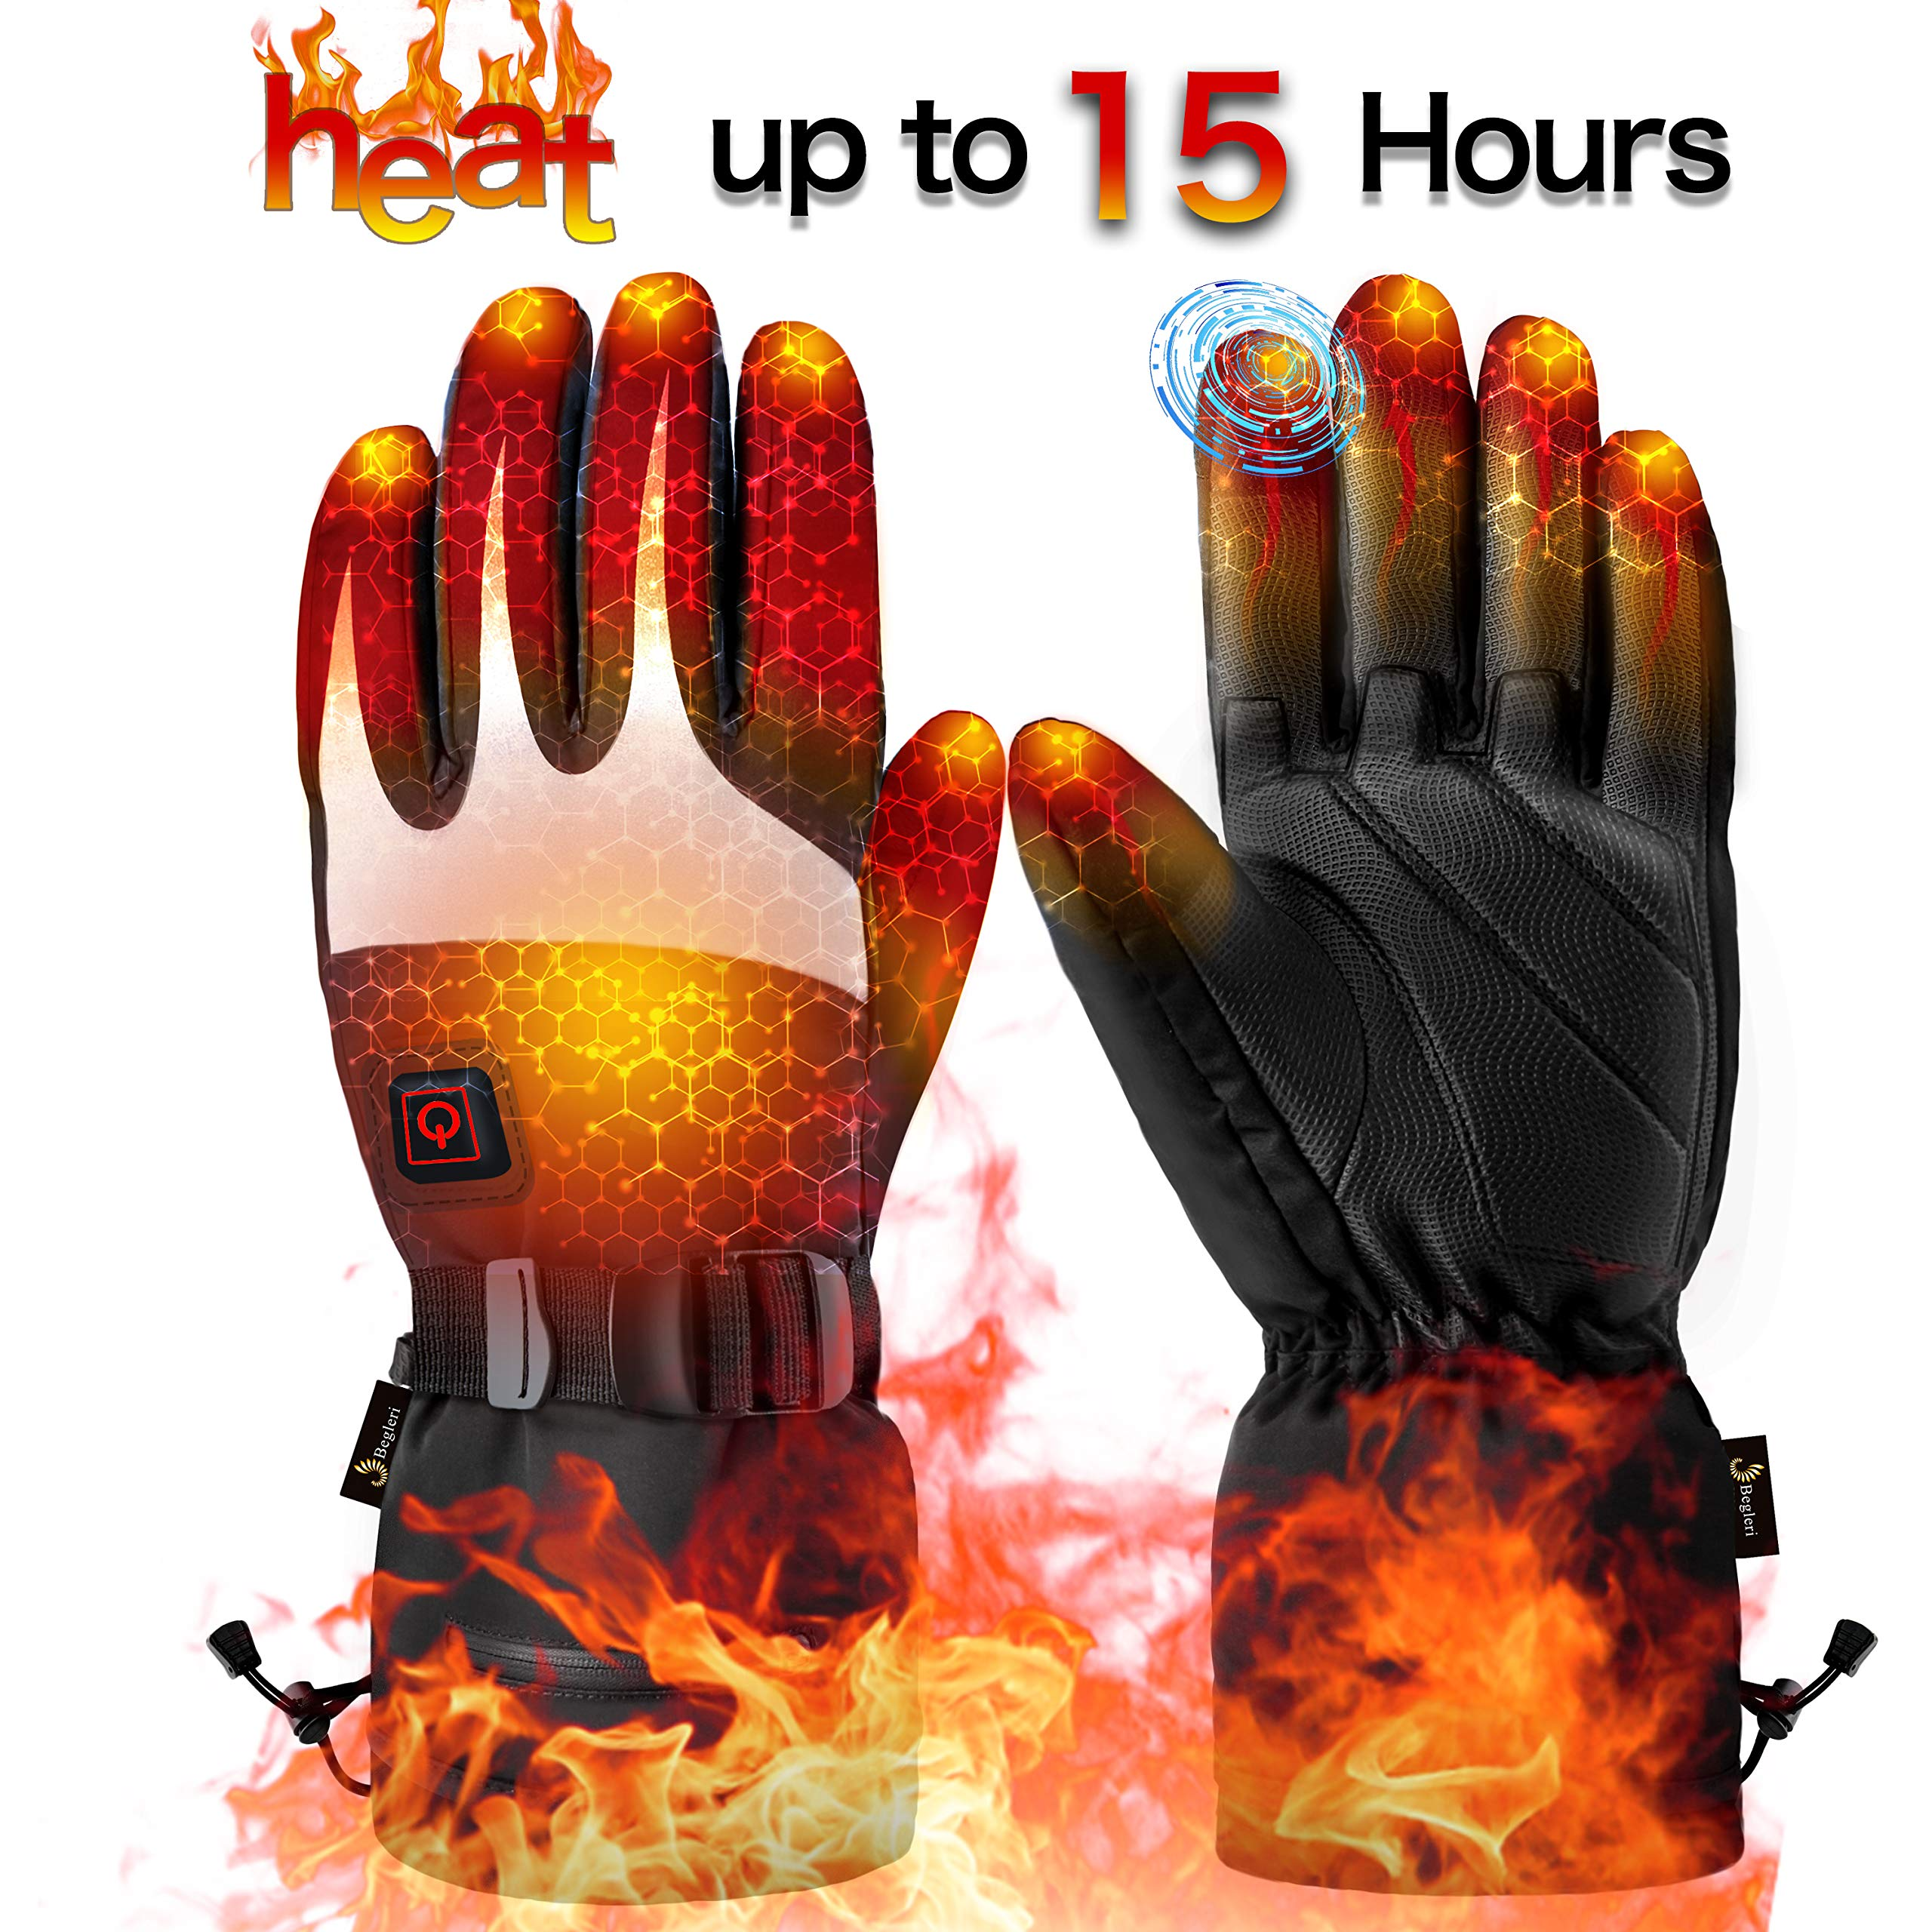 Heated Gloves for Men Women - Electric Heating Gloves, Battery Heated Motorcycle Gloves Rechargeable for Winter Sports